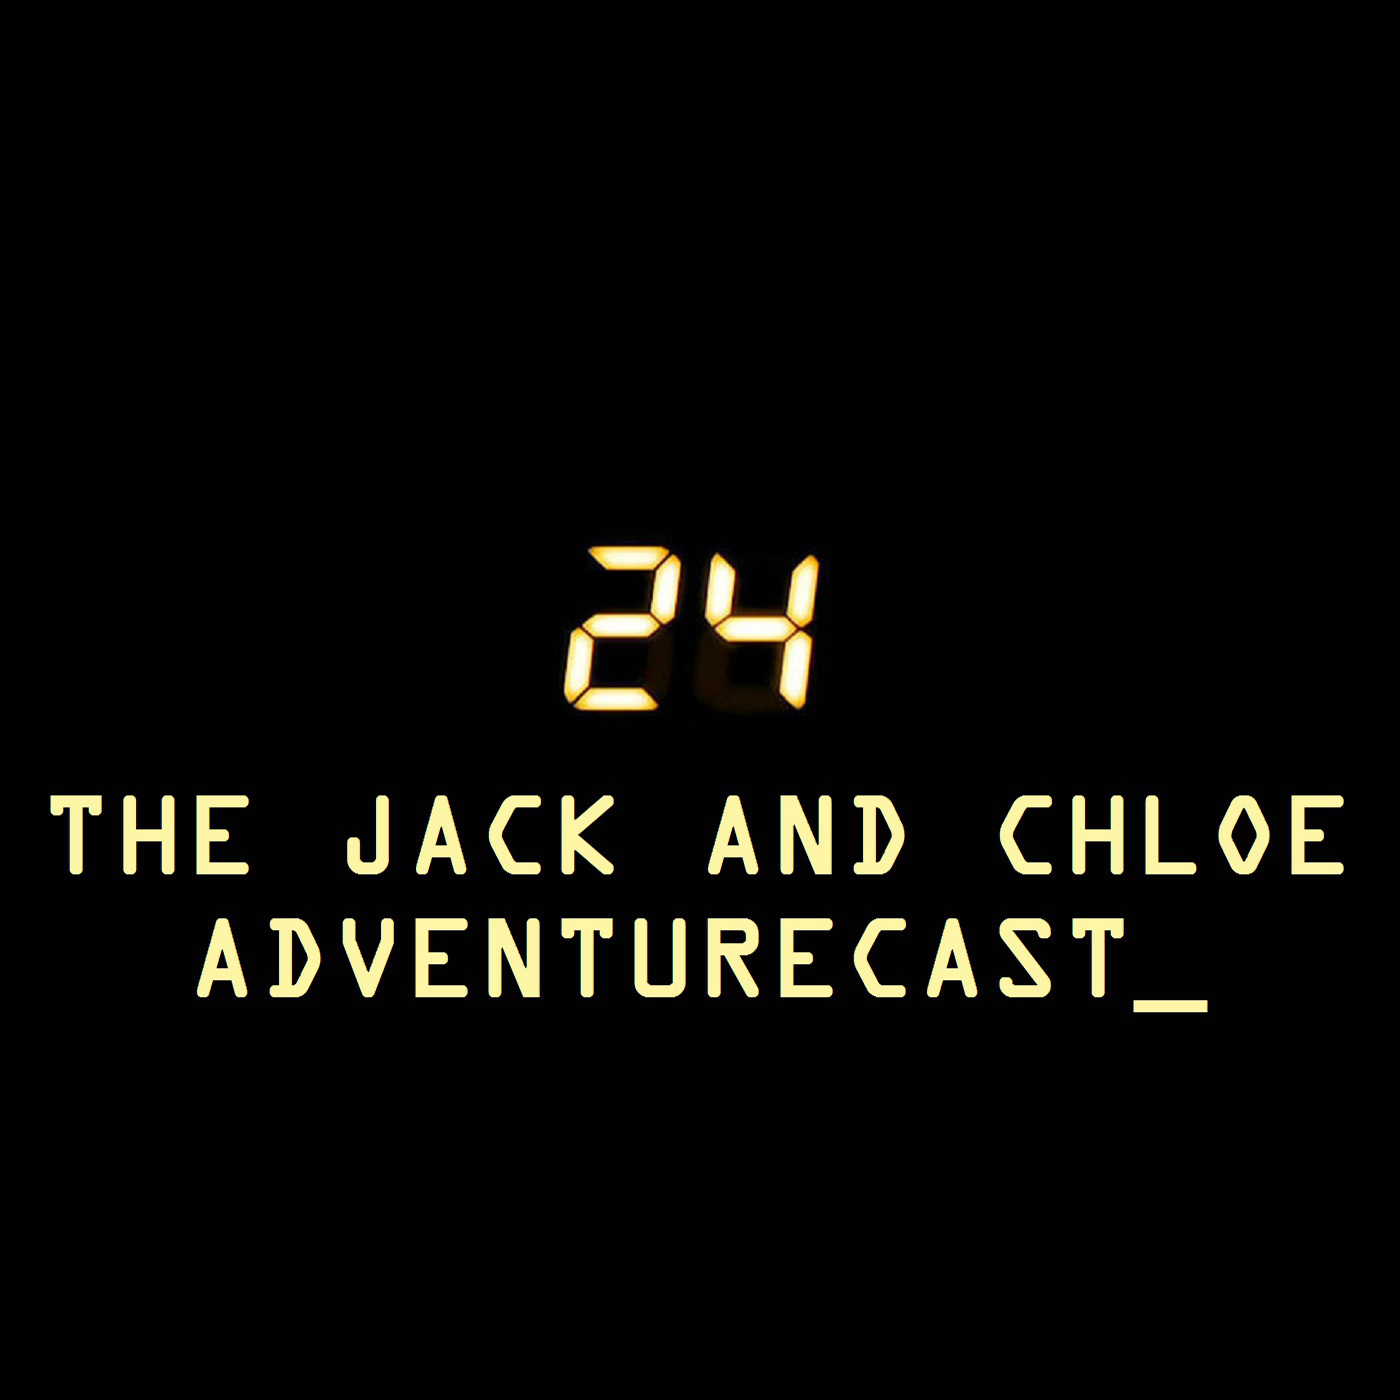 24: The Jack and Chloe Adventurecast